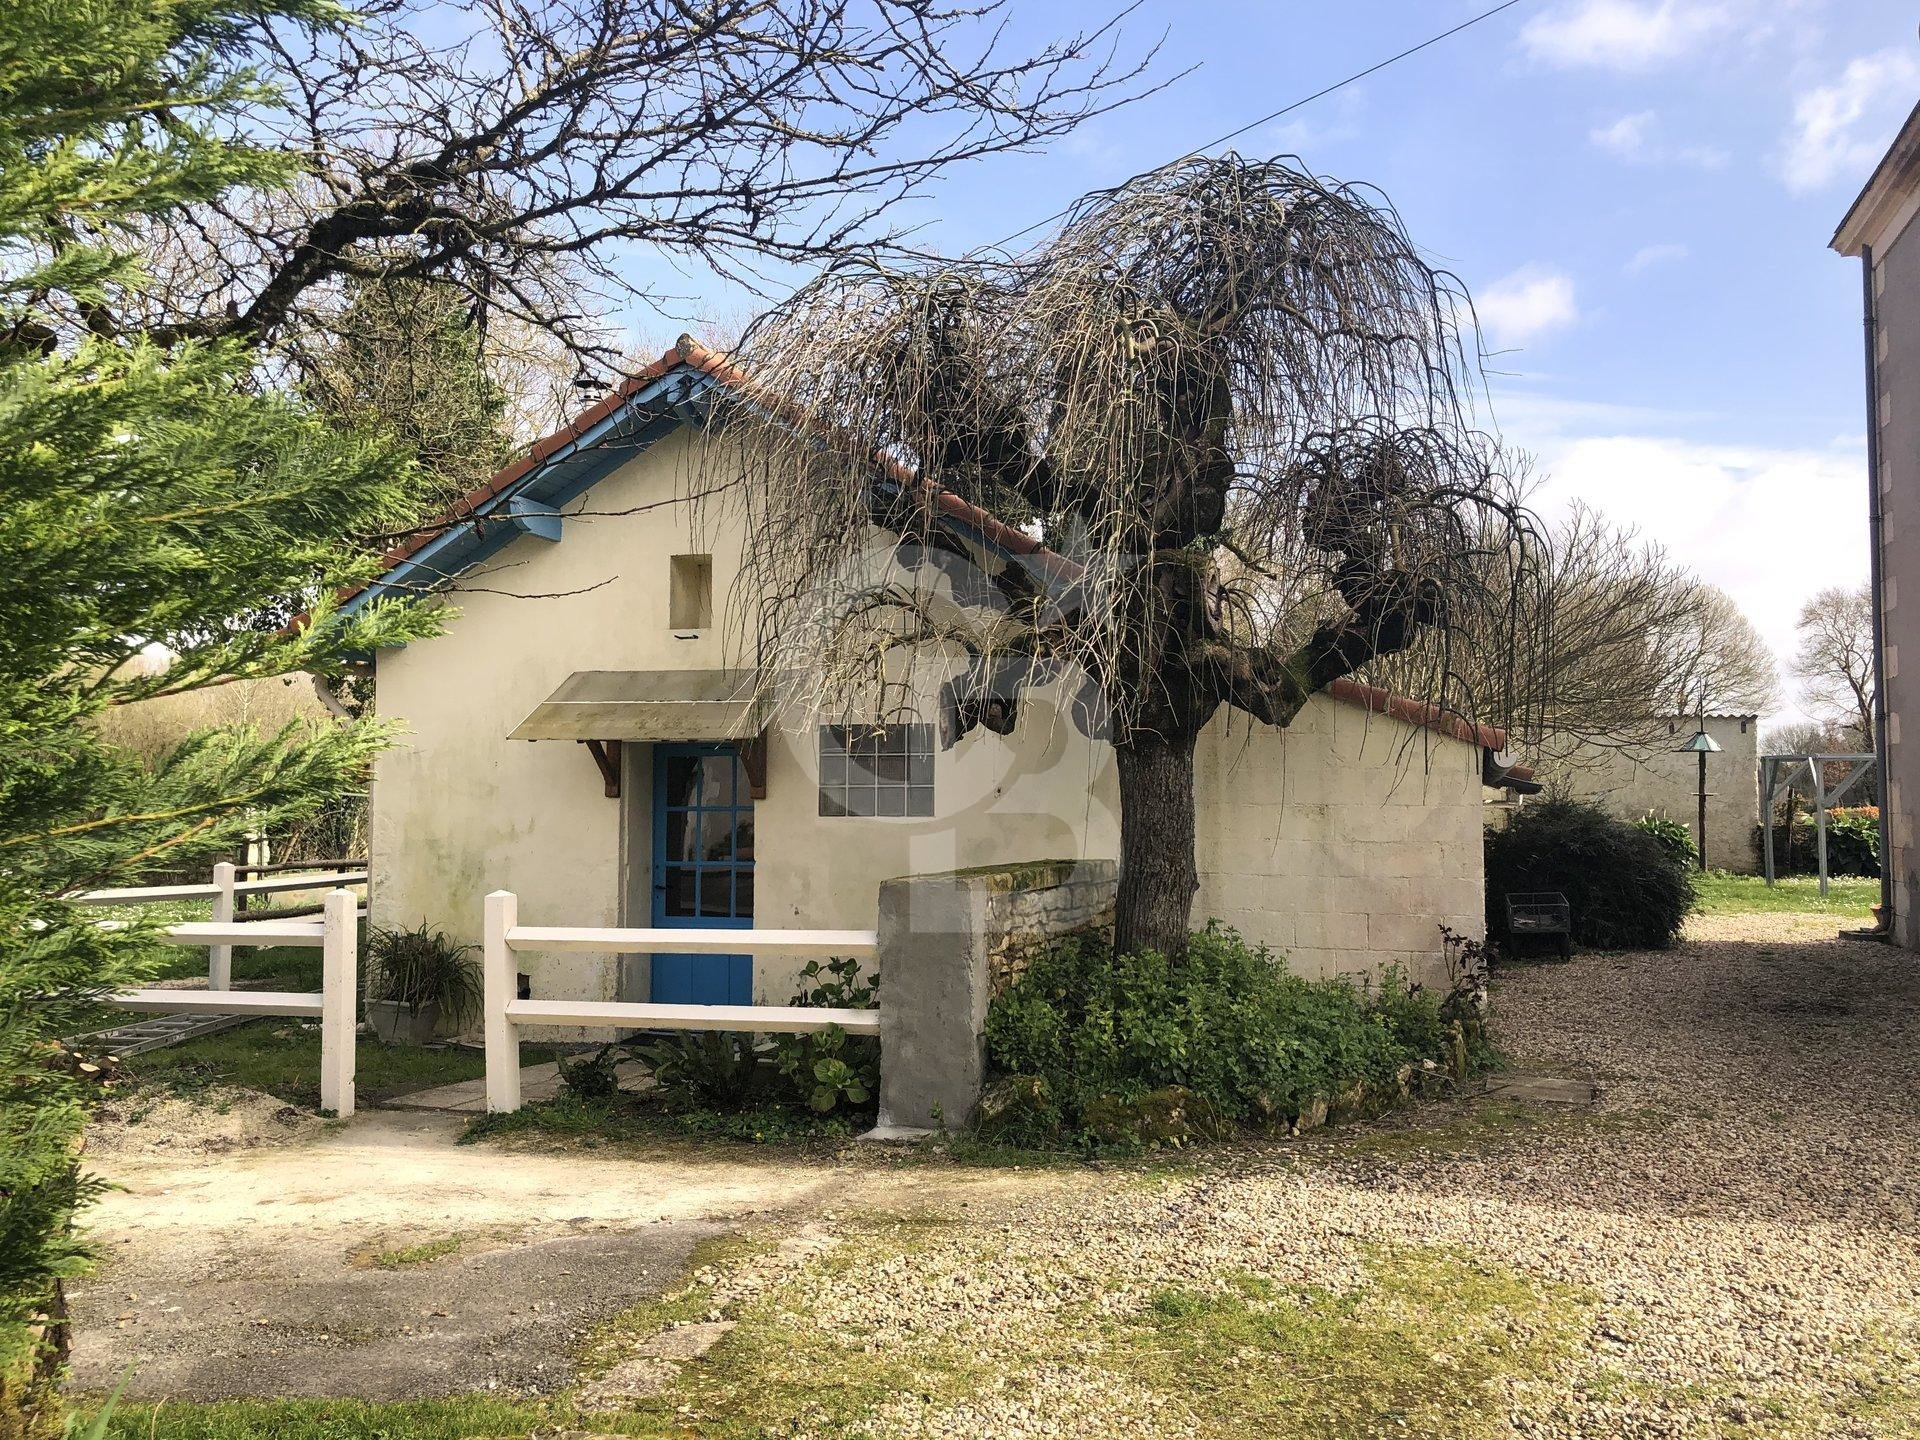 For sale manor house with 5 dwellings on 5 acres in Charente-Maritime.